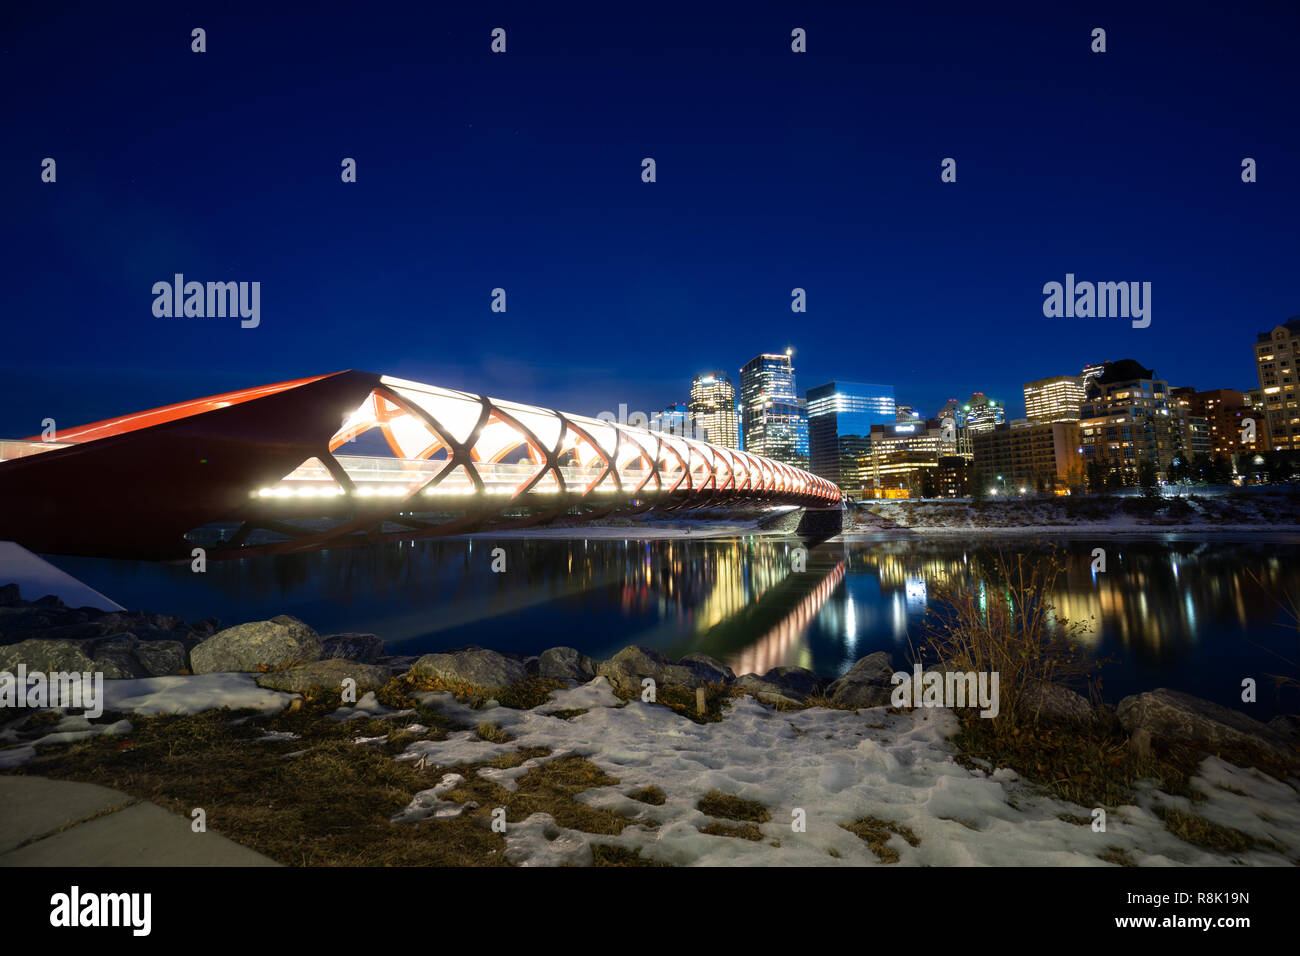 Bridge over river with Night city Skyline in background - Stock Image